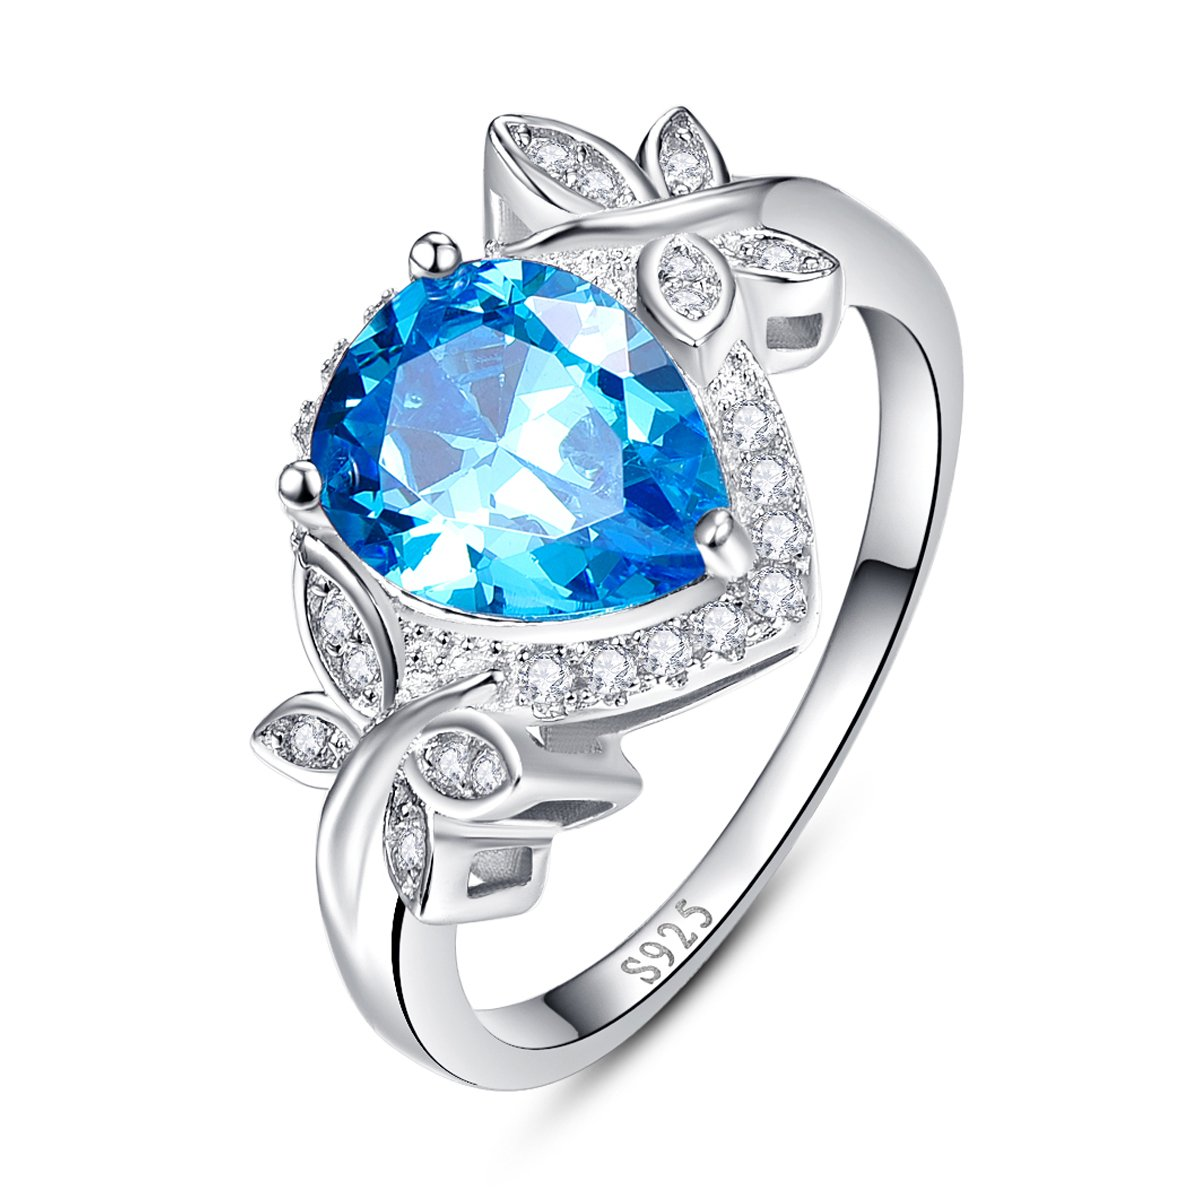 BONLAVIE 3.85ct Pear Cut Created Swiss Blue Topaz & CZ Halo Promise Engagement Ring 925 Sterling Silver 031R13